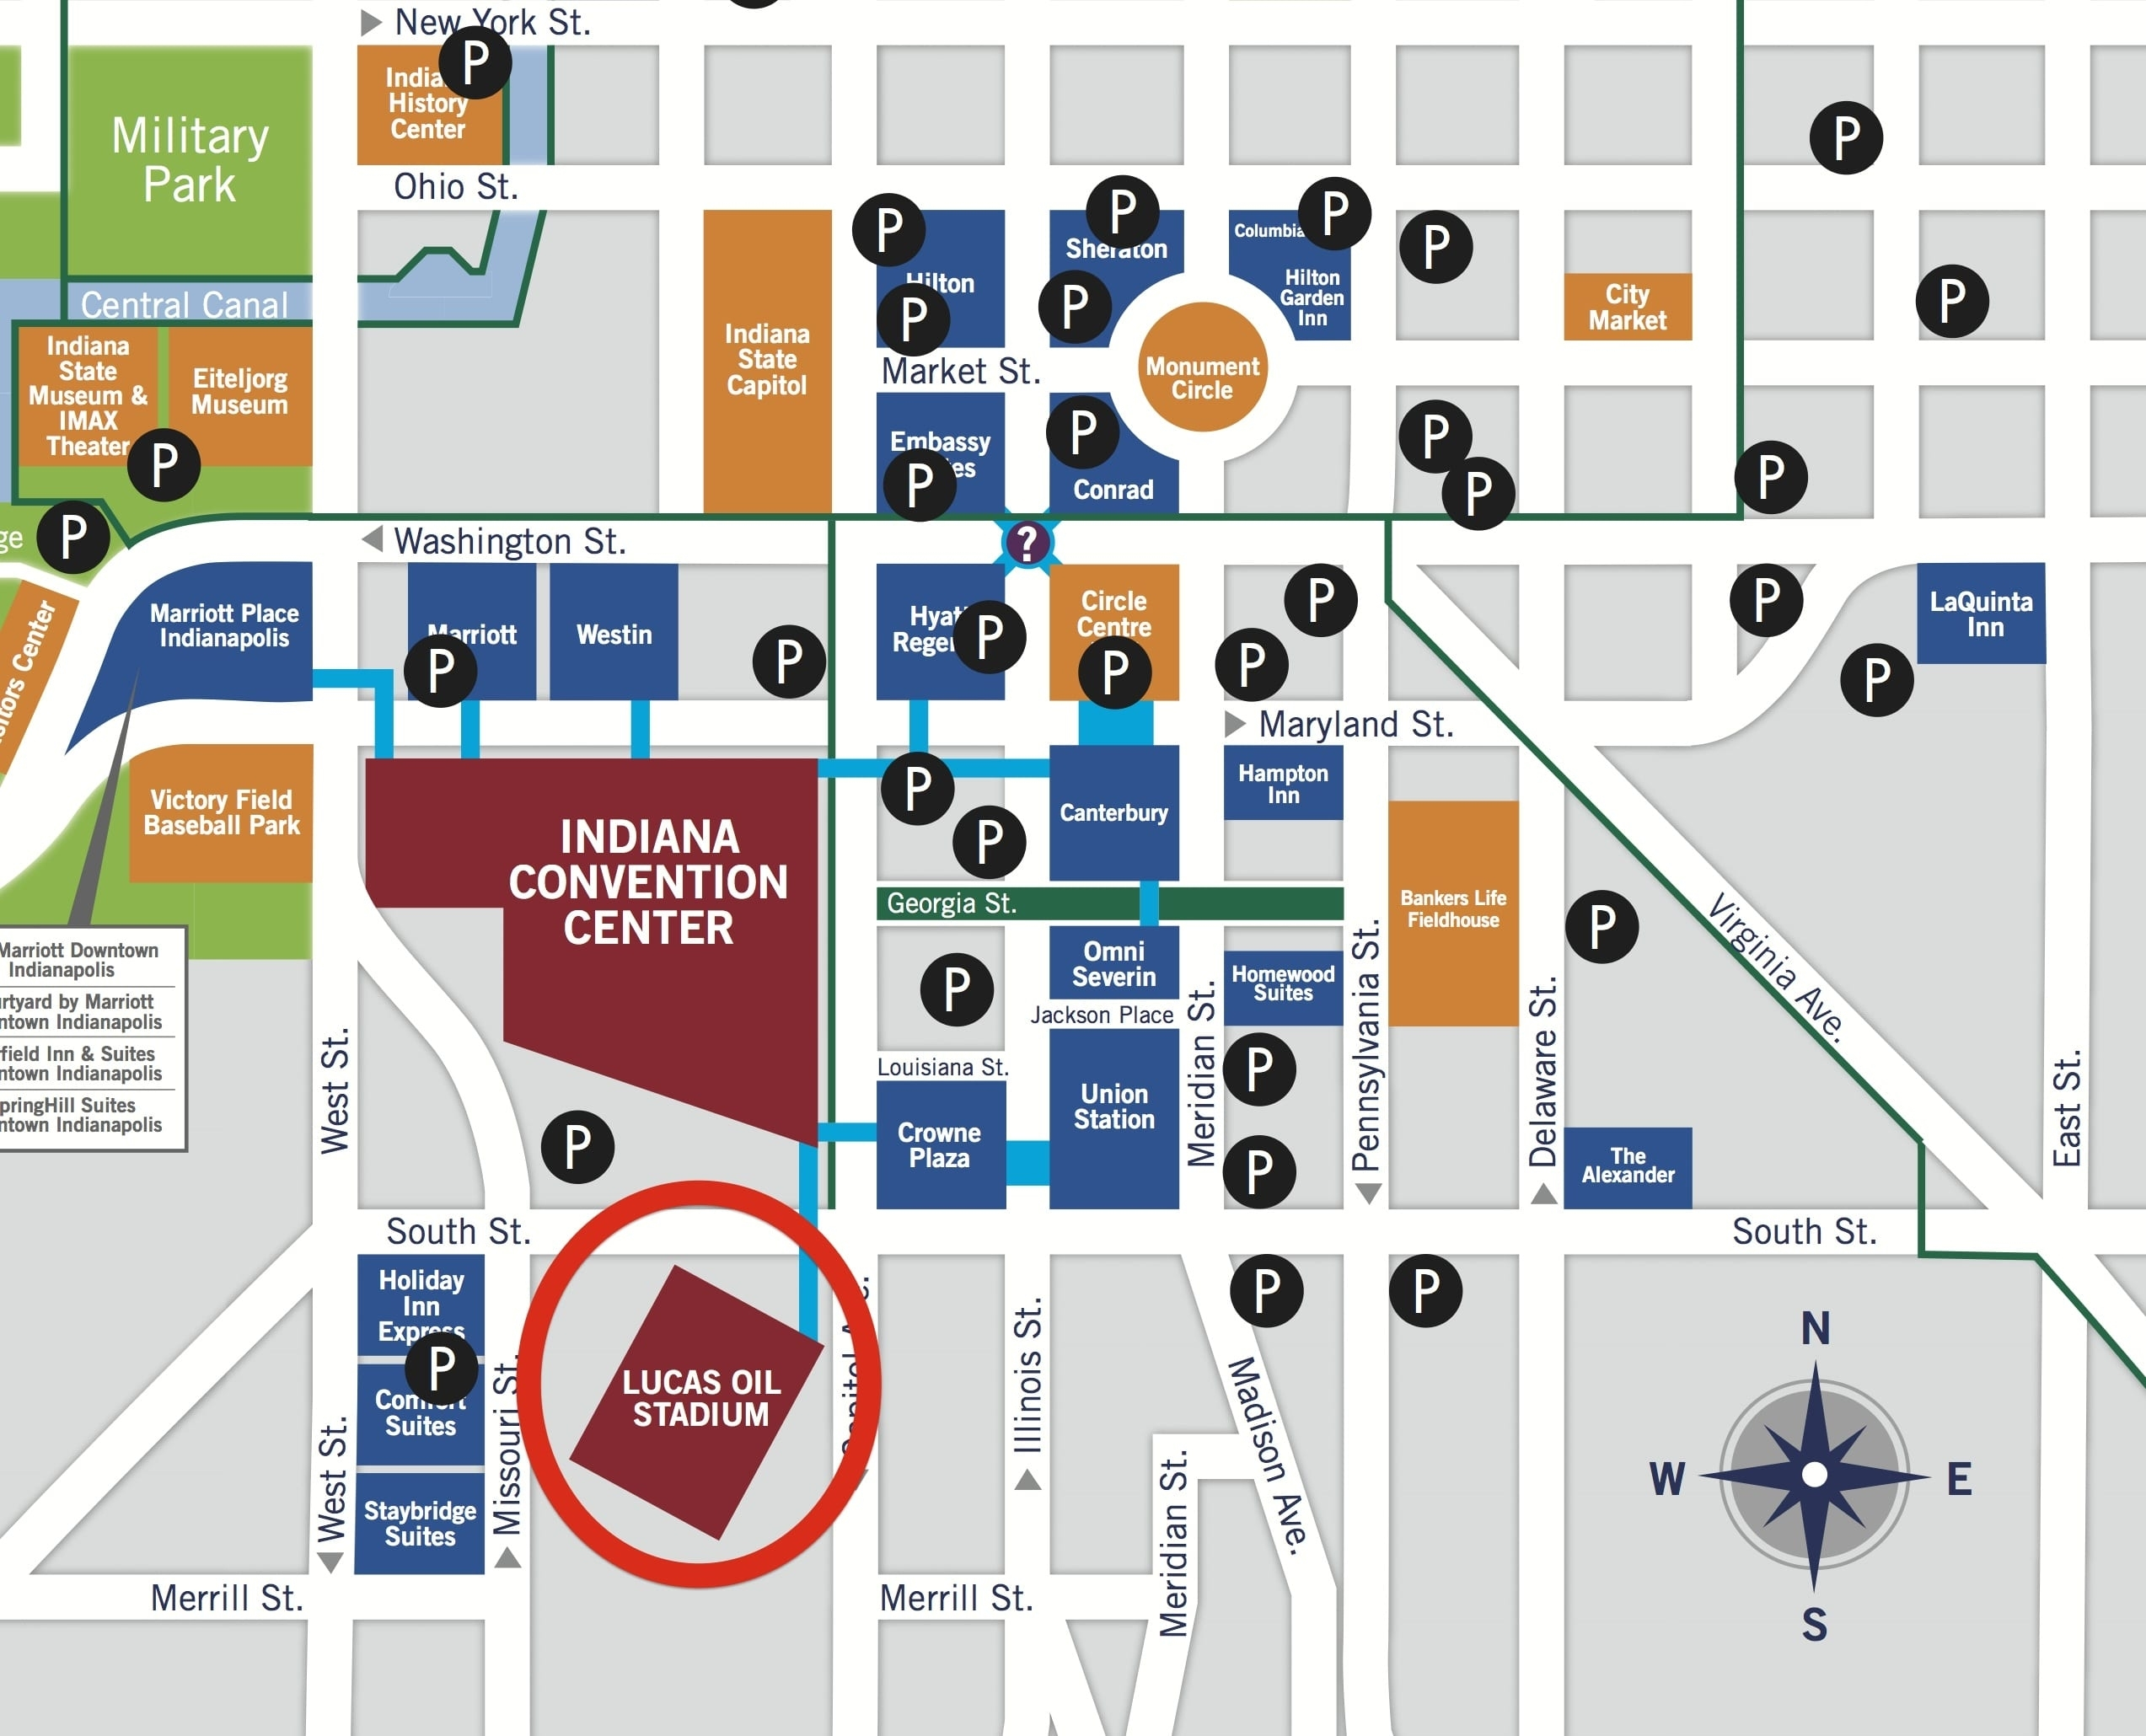 Lucas Oil Stadium Parking Guide: Prices, Maps, Deals | Spg for Super Bowl Parking Map